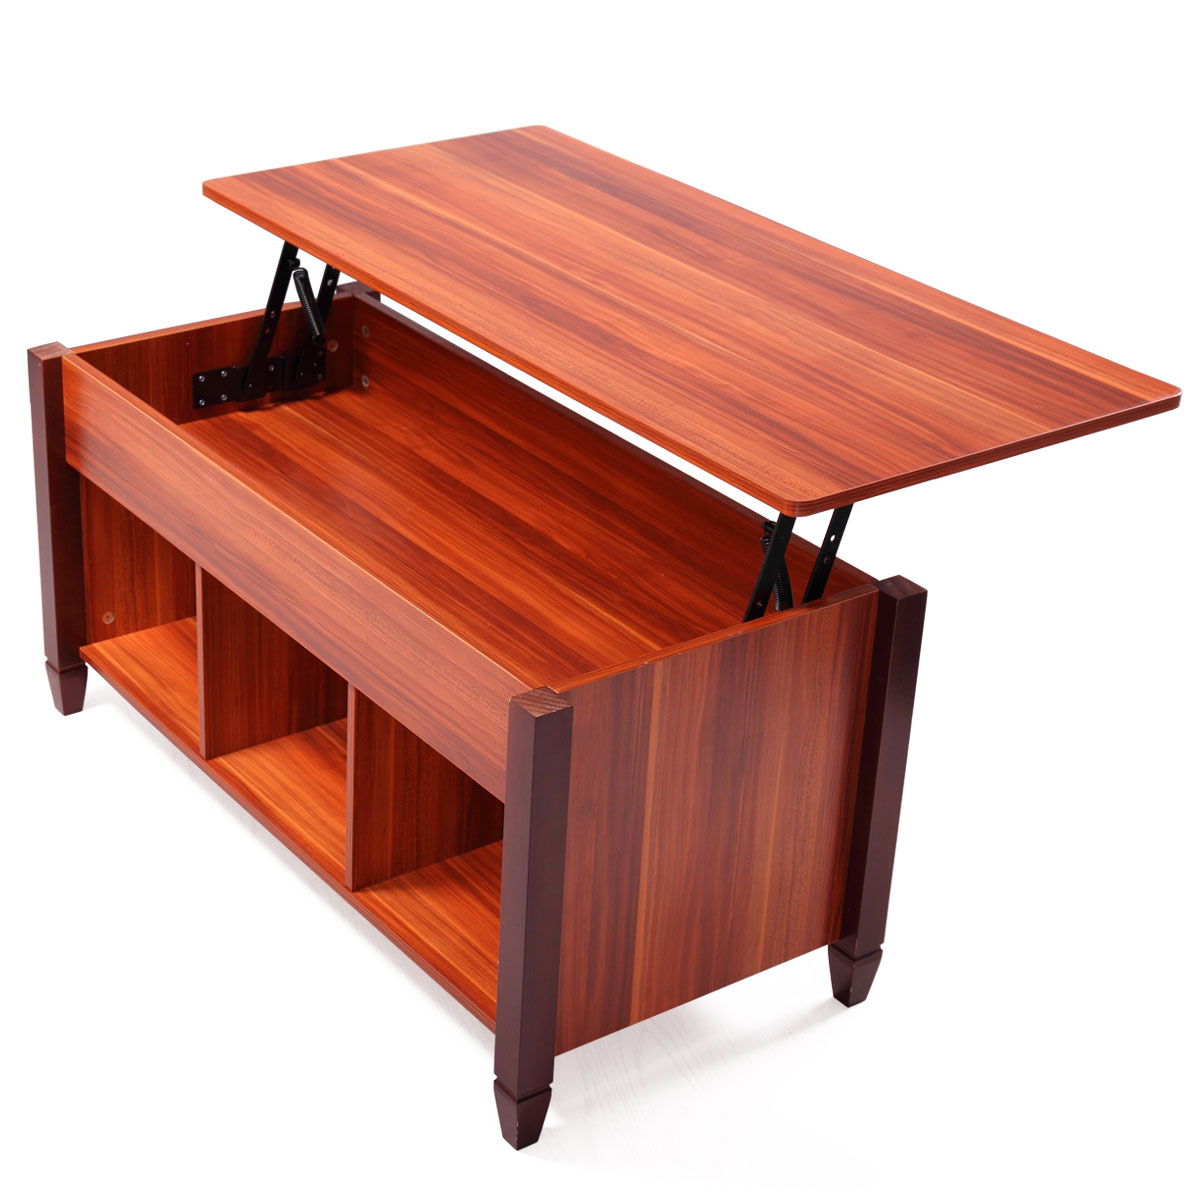 Lift Top Convertible Coffee Table Solid Wood Desk Storage Compartment and Lift Tabletop by Jaxpety